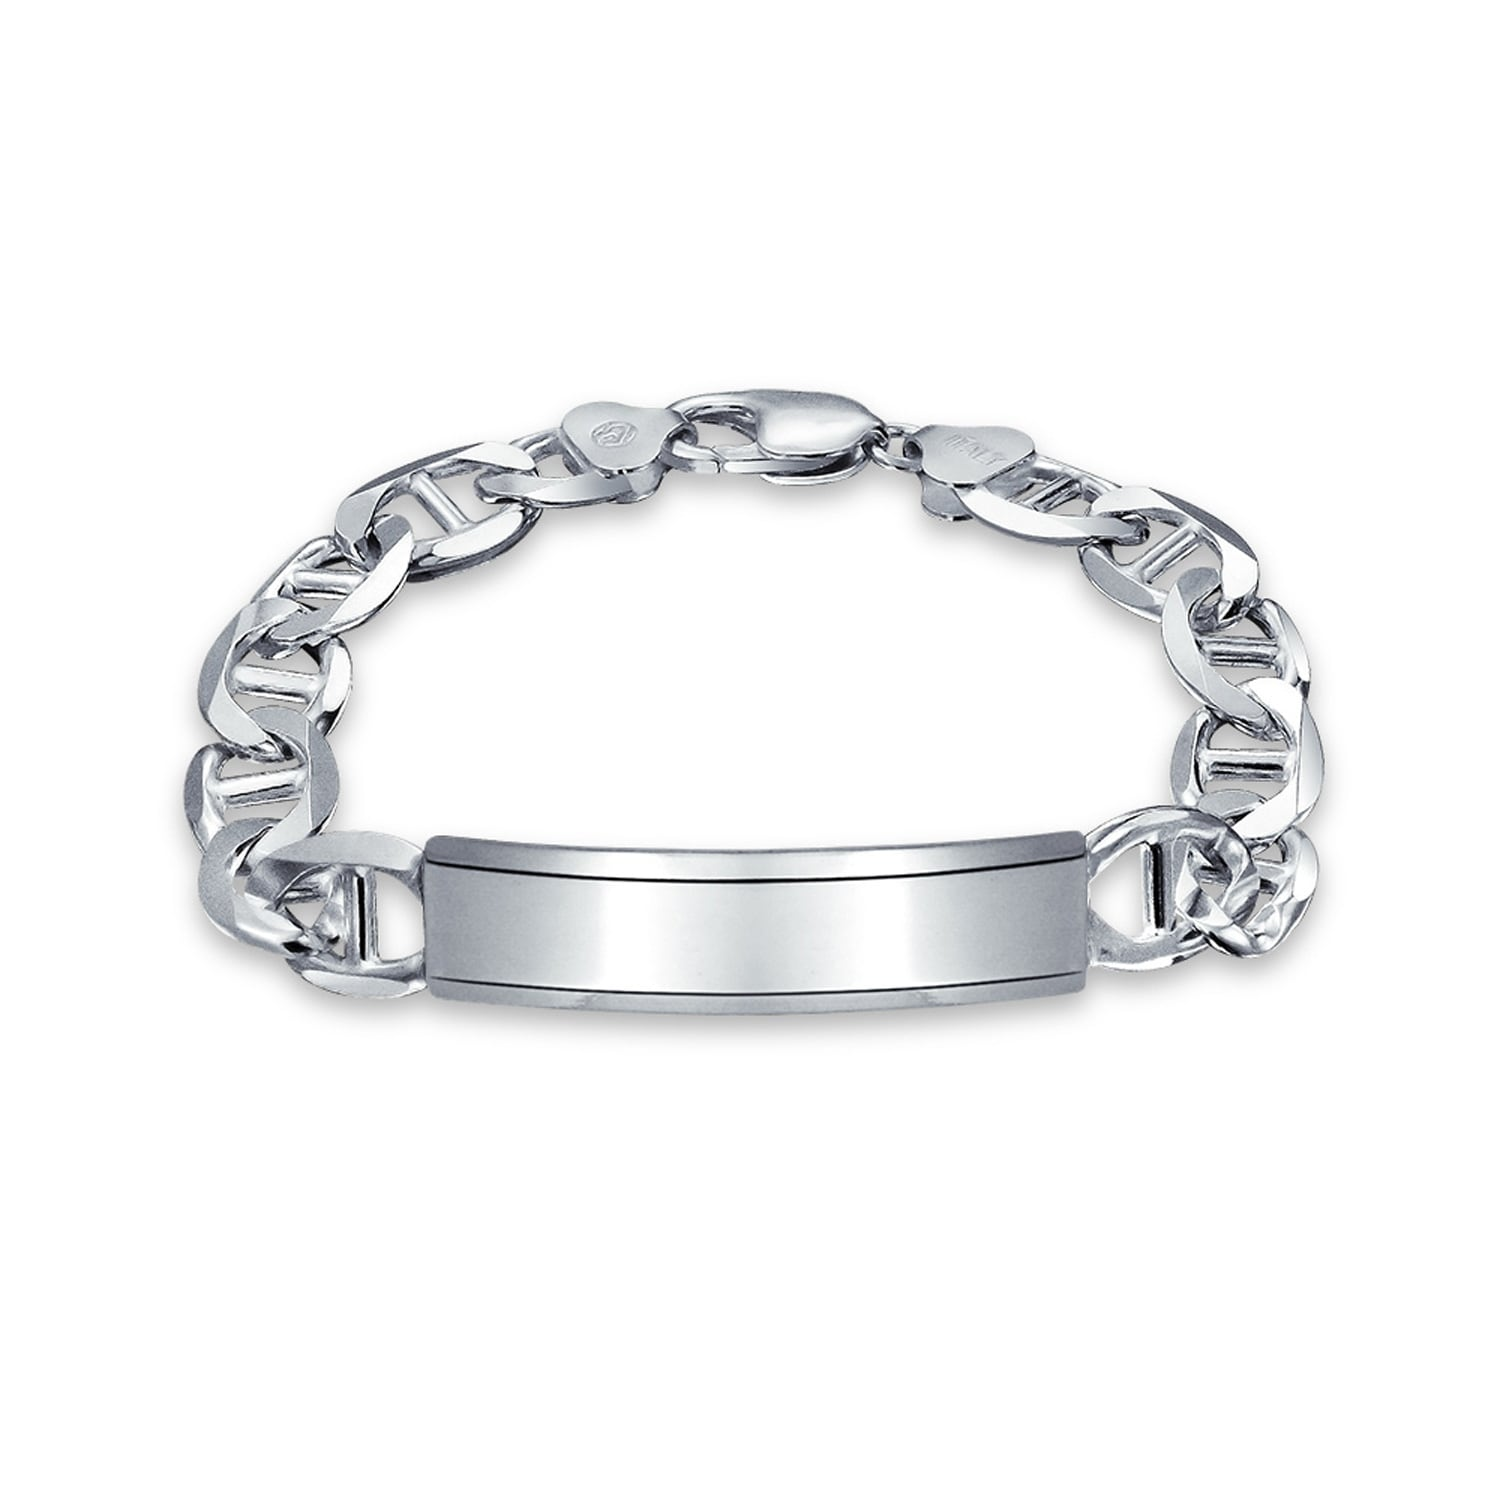 925 Sterling Silver Engravable Figaro I.D Chain Bracelet Made In Italy